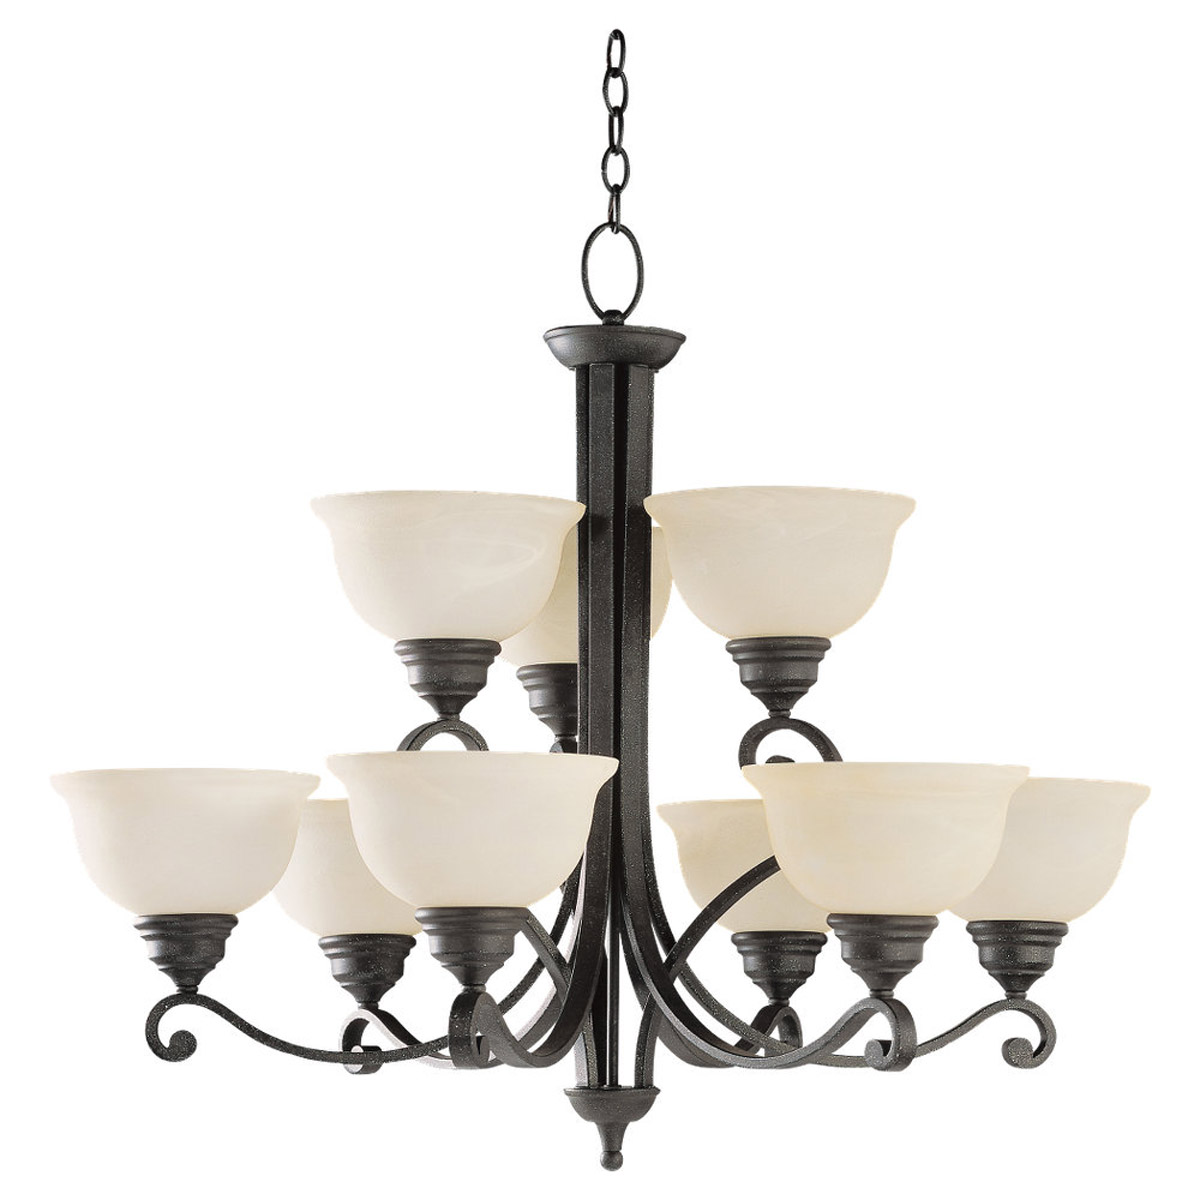 Sea Gull Lighting Serenity 9 Light Chandelier in Weathered Iron 31192-07 photo